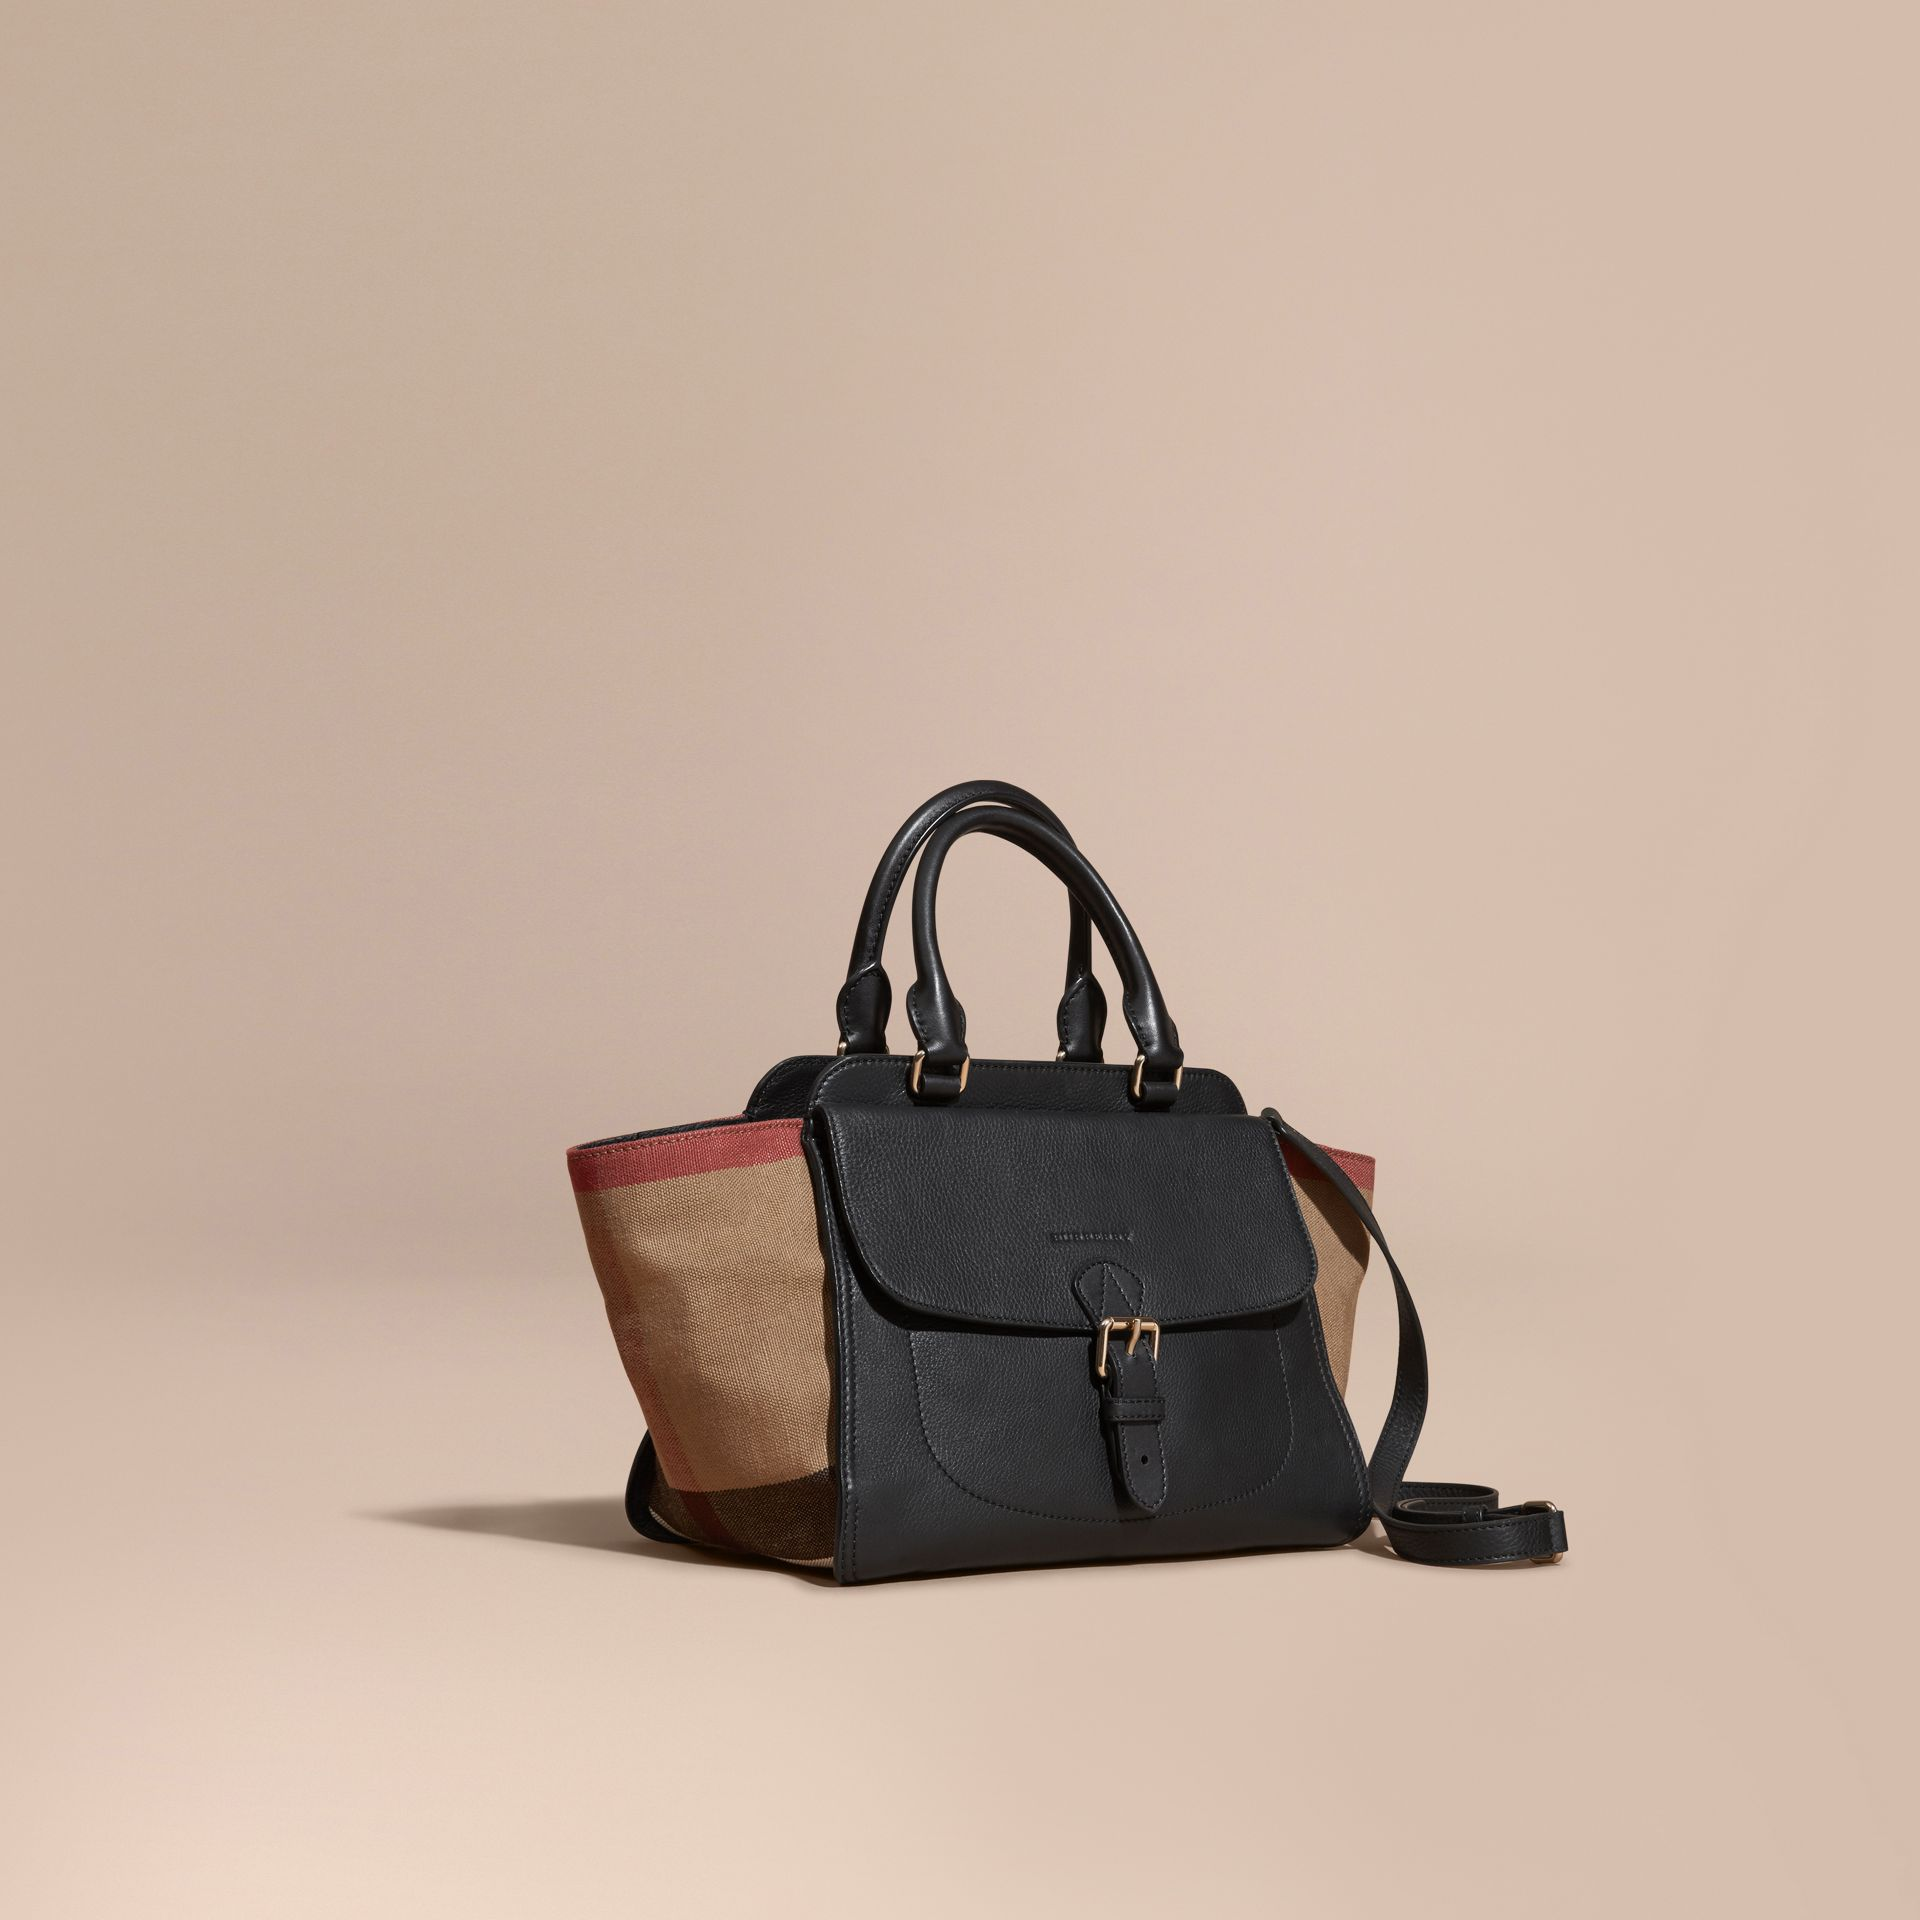 Black Medium Canvas Check and Leather Tote Bag Black - gallery image 1